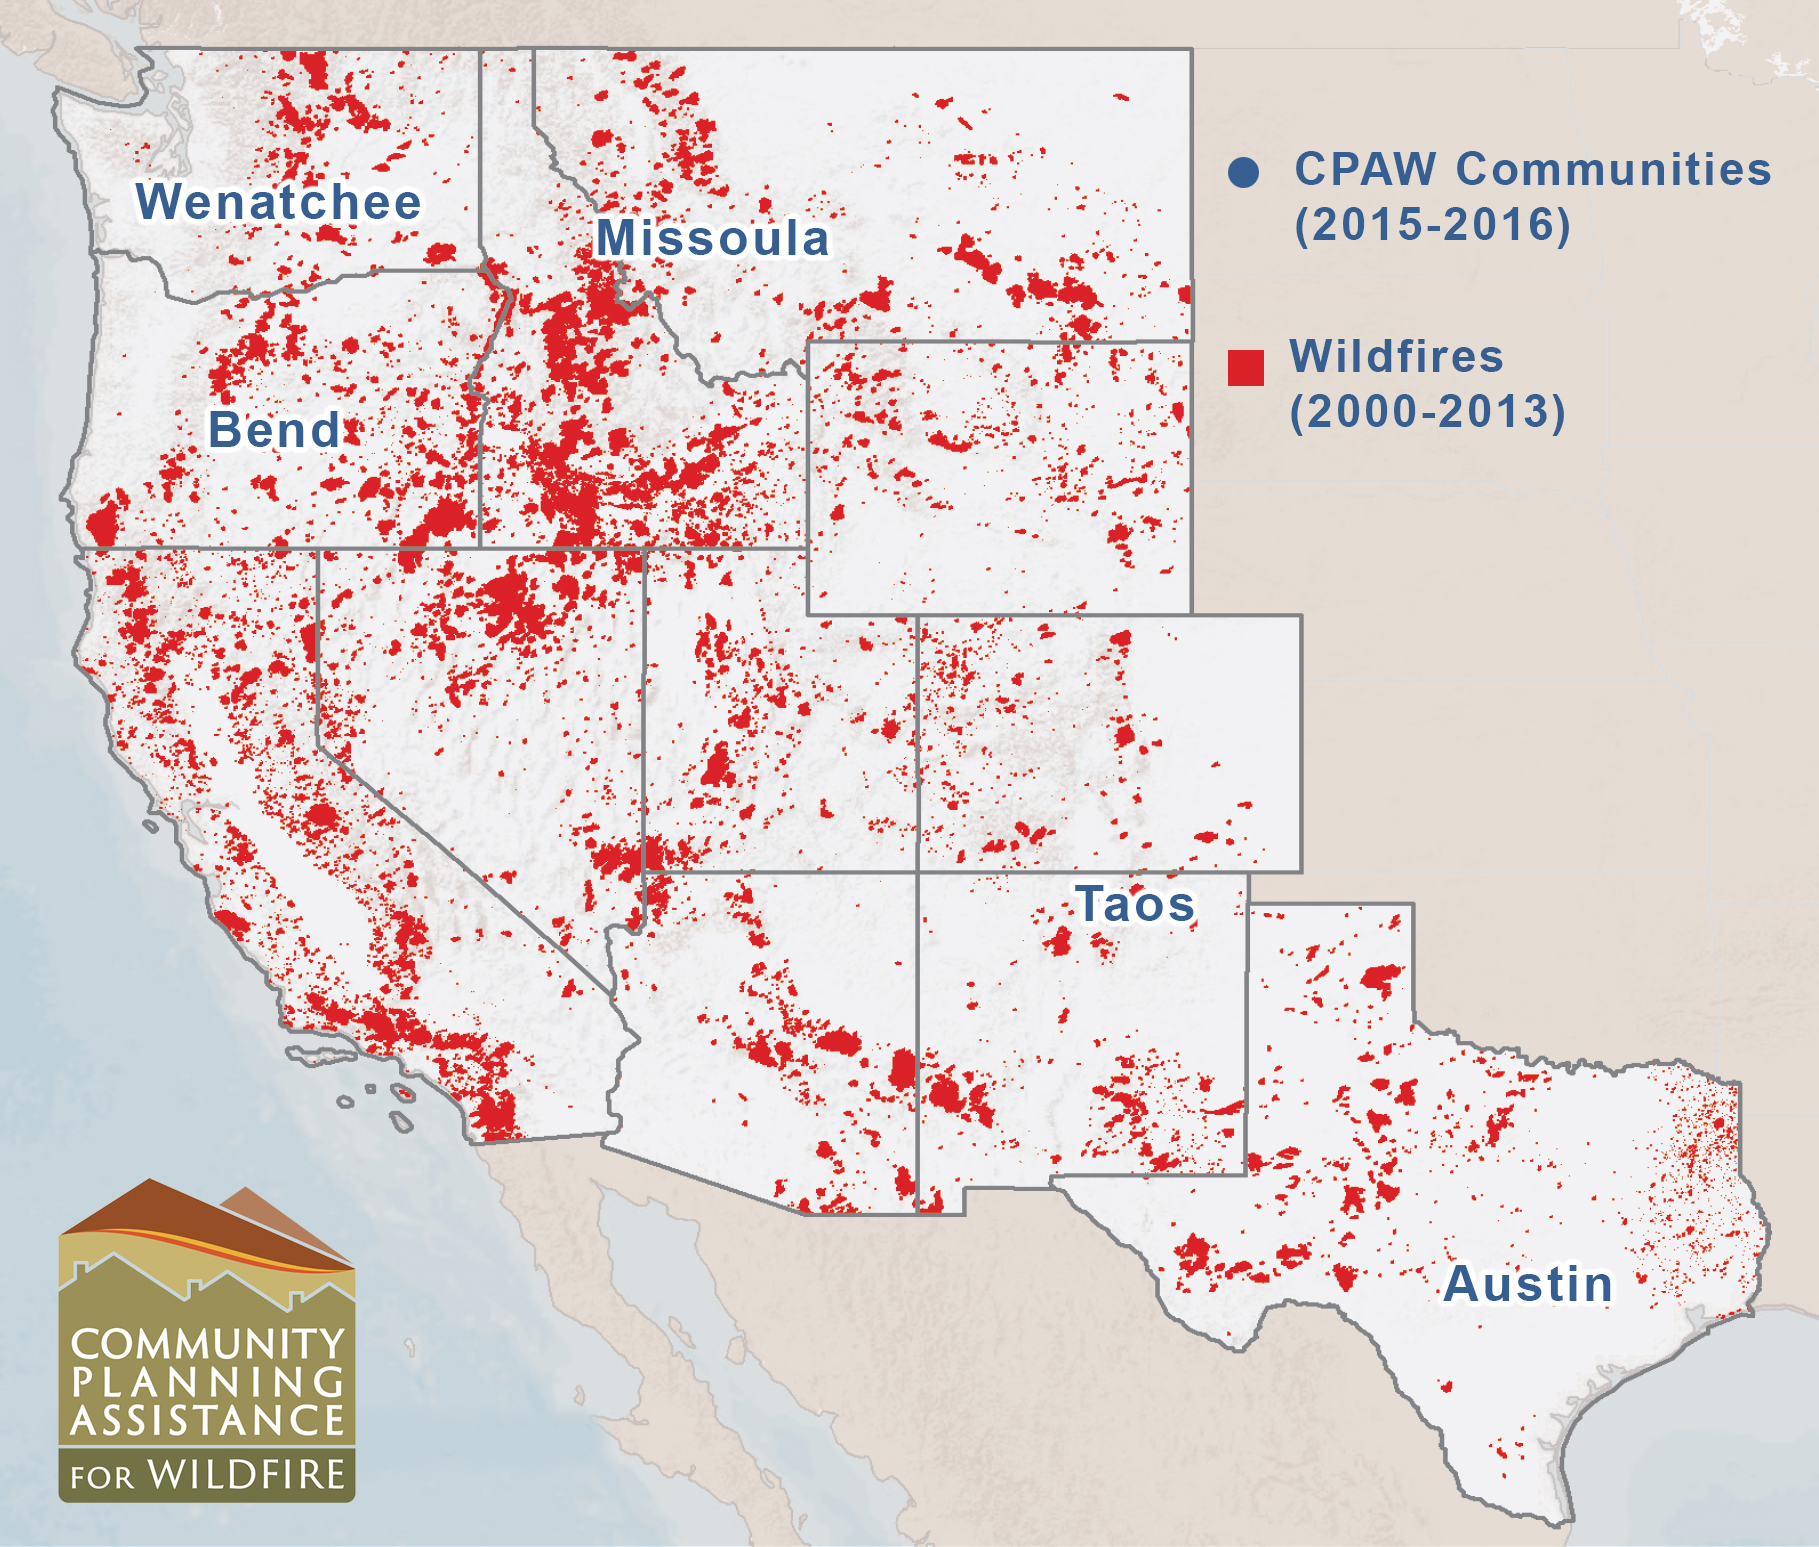 PROGRAM OPERATING IN FIVE COMMUNITIES SO FAR. The Community Planning Assistance for Wildfire Program is currently underway in five communities across the country. Image courtesy of Headwaters Economics.